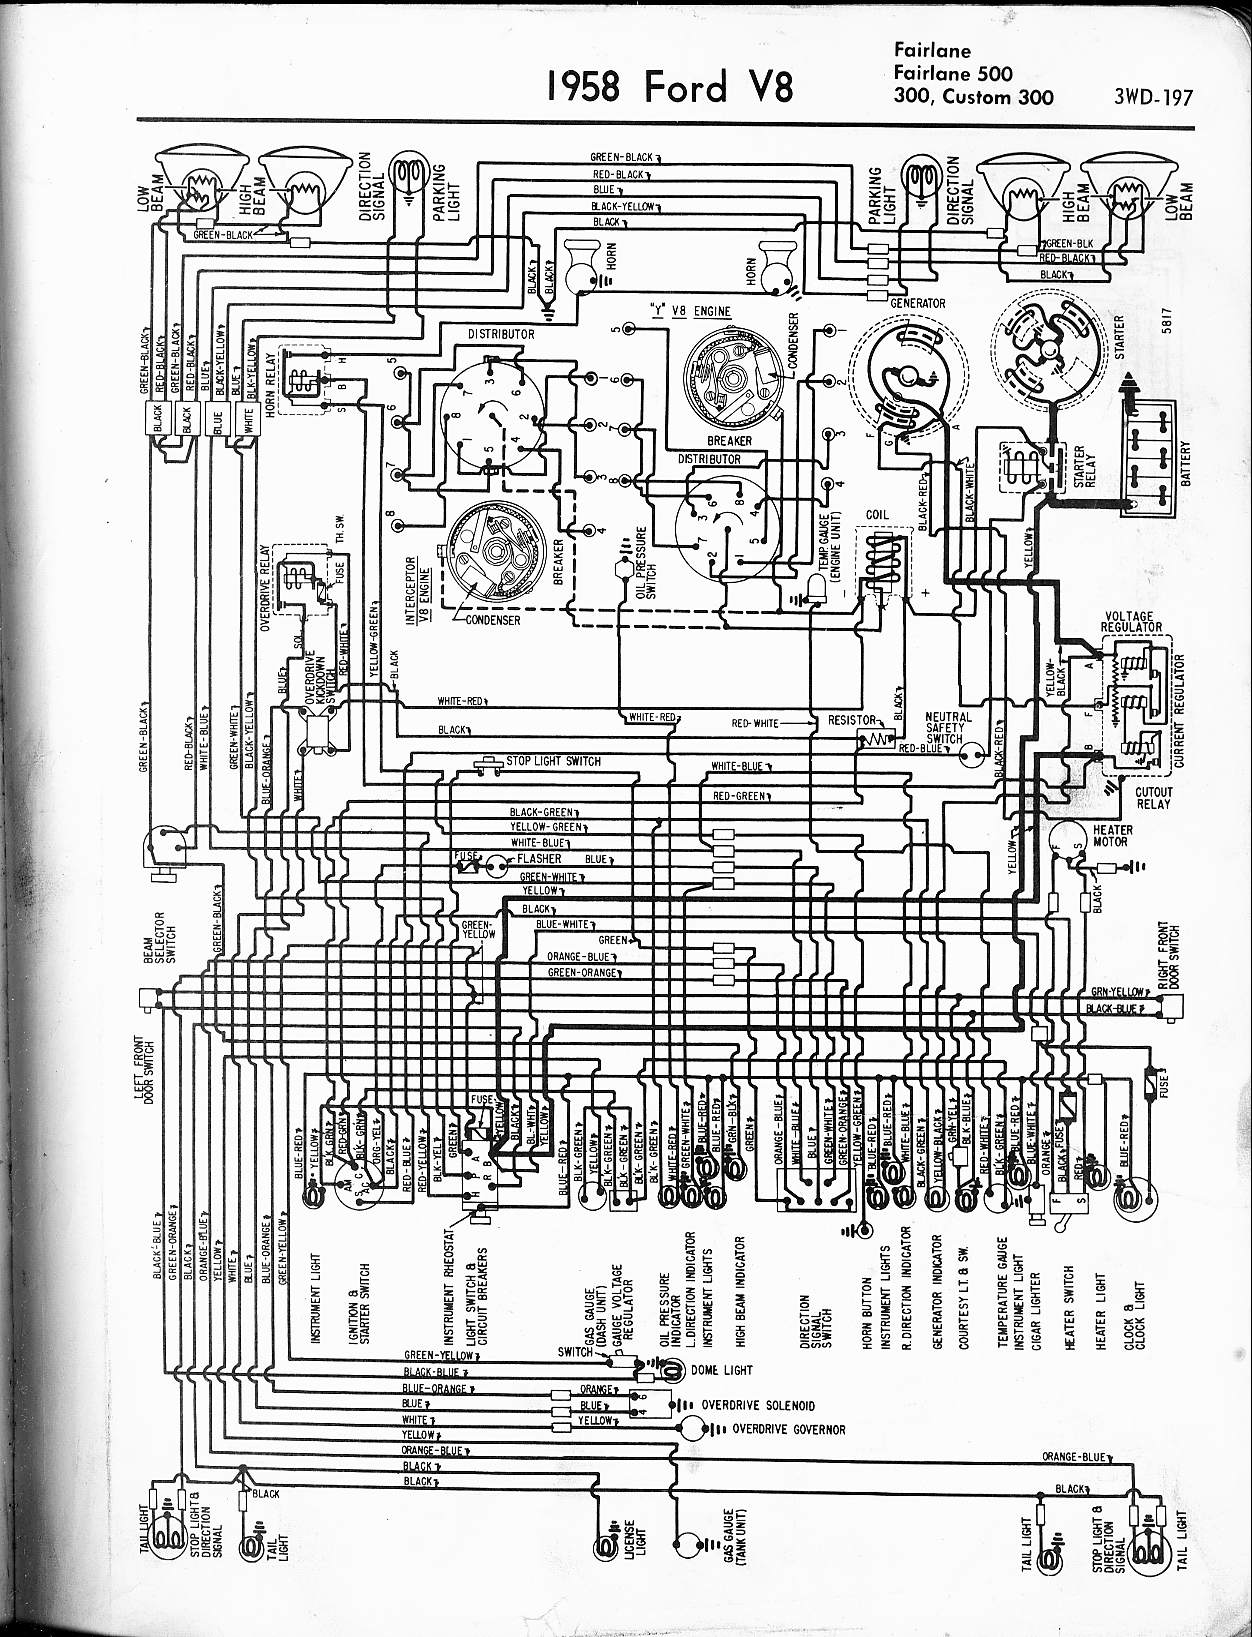 MWire5765 197 1974 ford f100 wiring diagram wiring diagram simonand f100 wiring diagram at virtualis.co